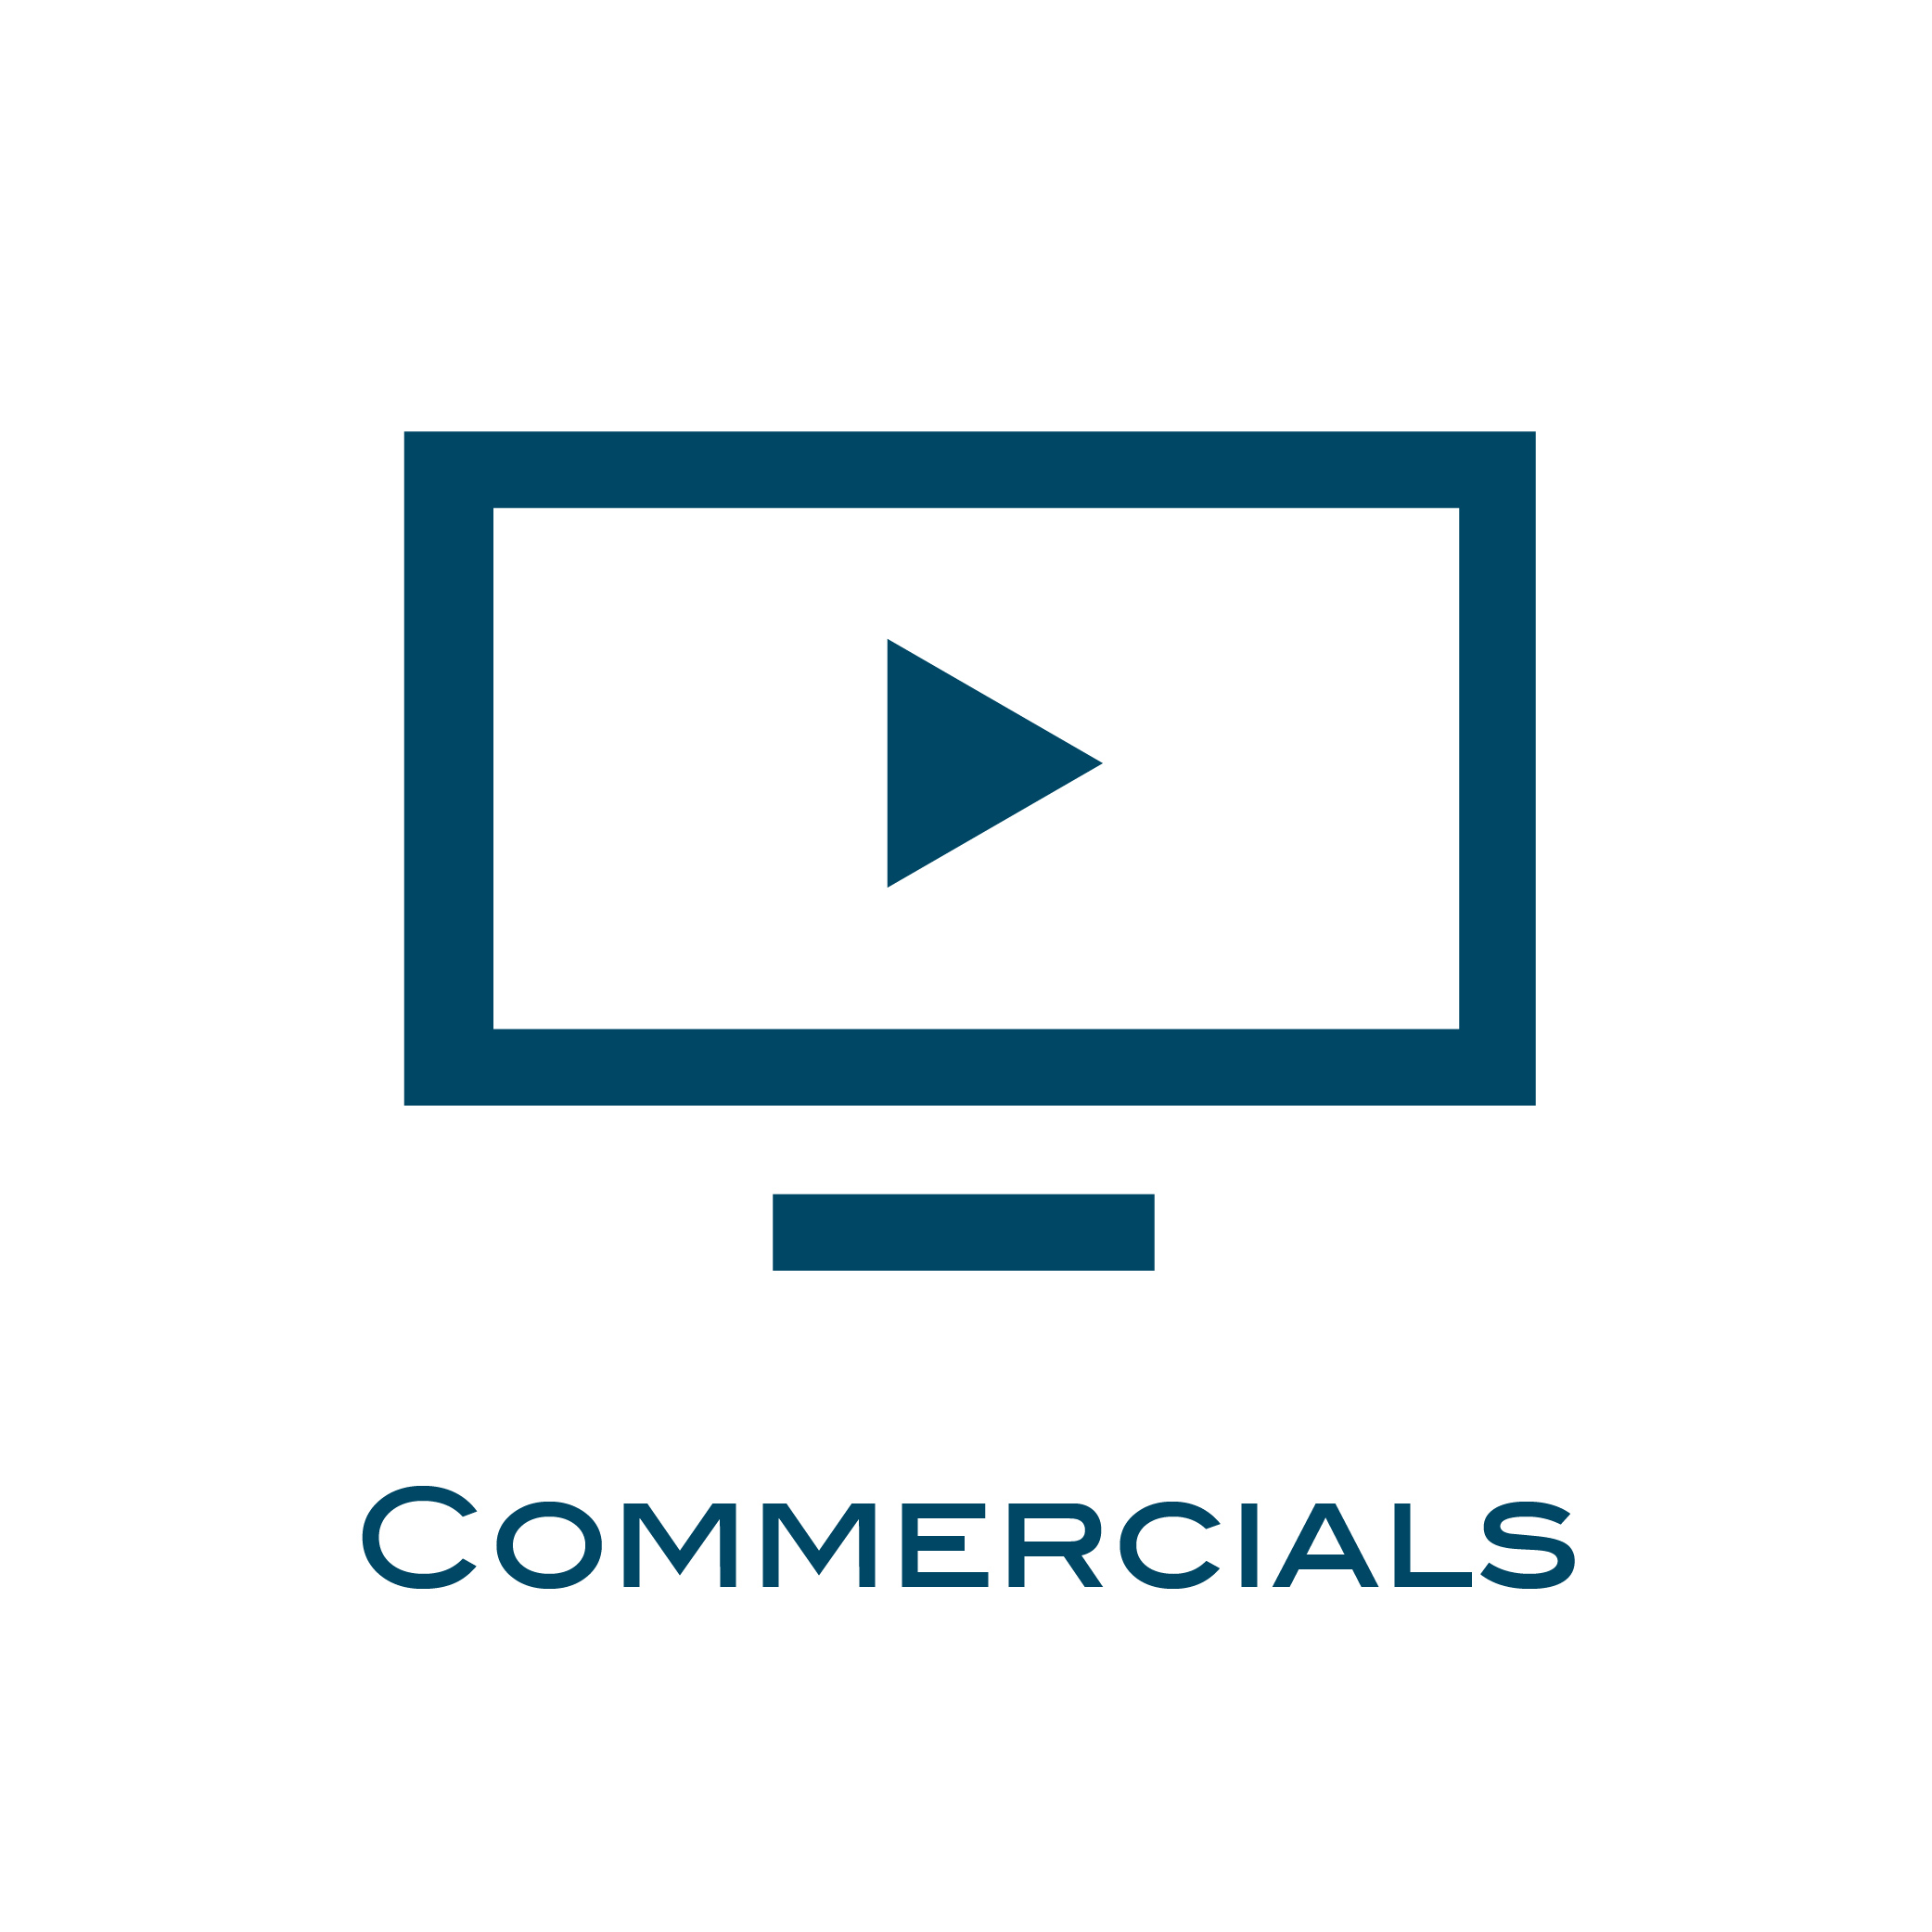 Film Fabric produces locally and globally broadcast advertising content for some of the world's leading creative agencies.